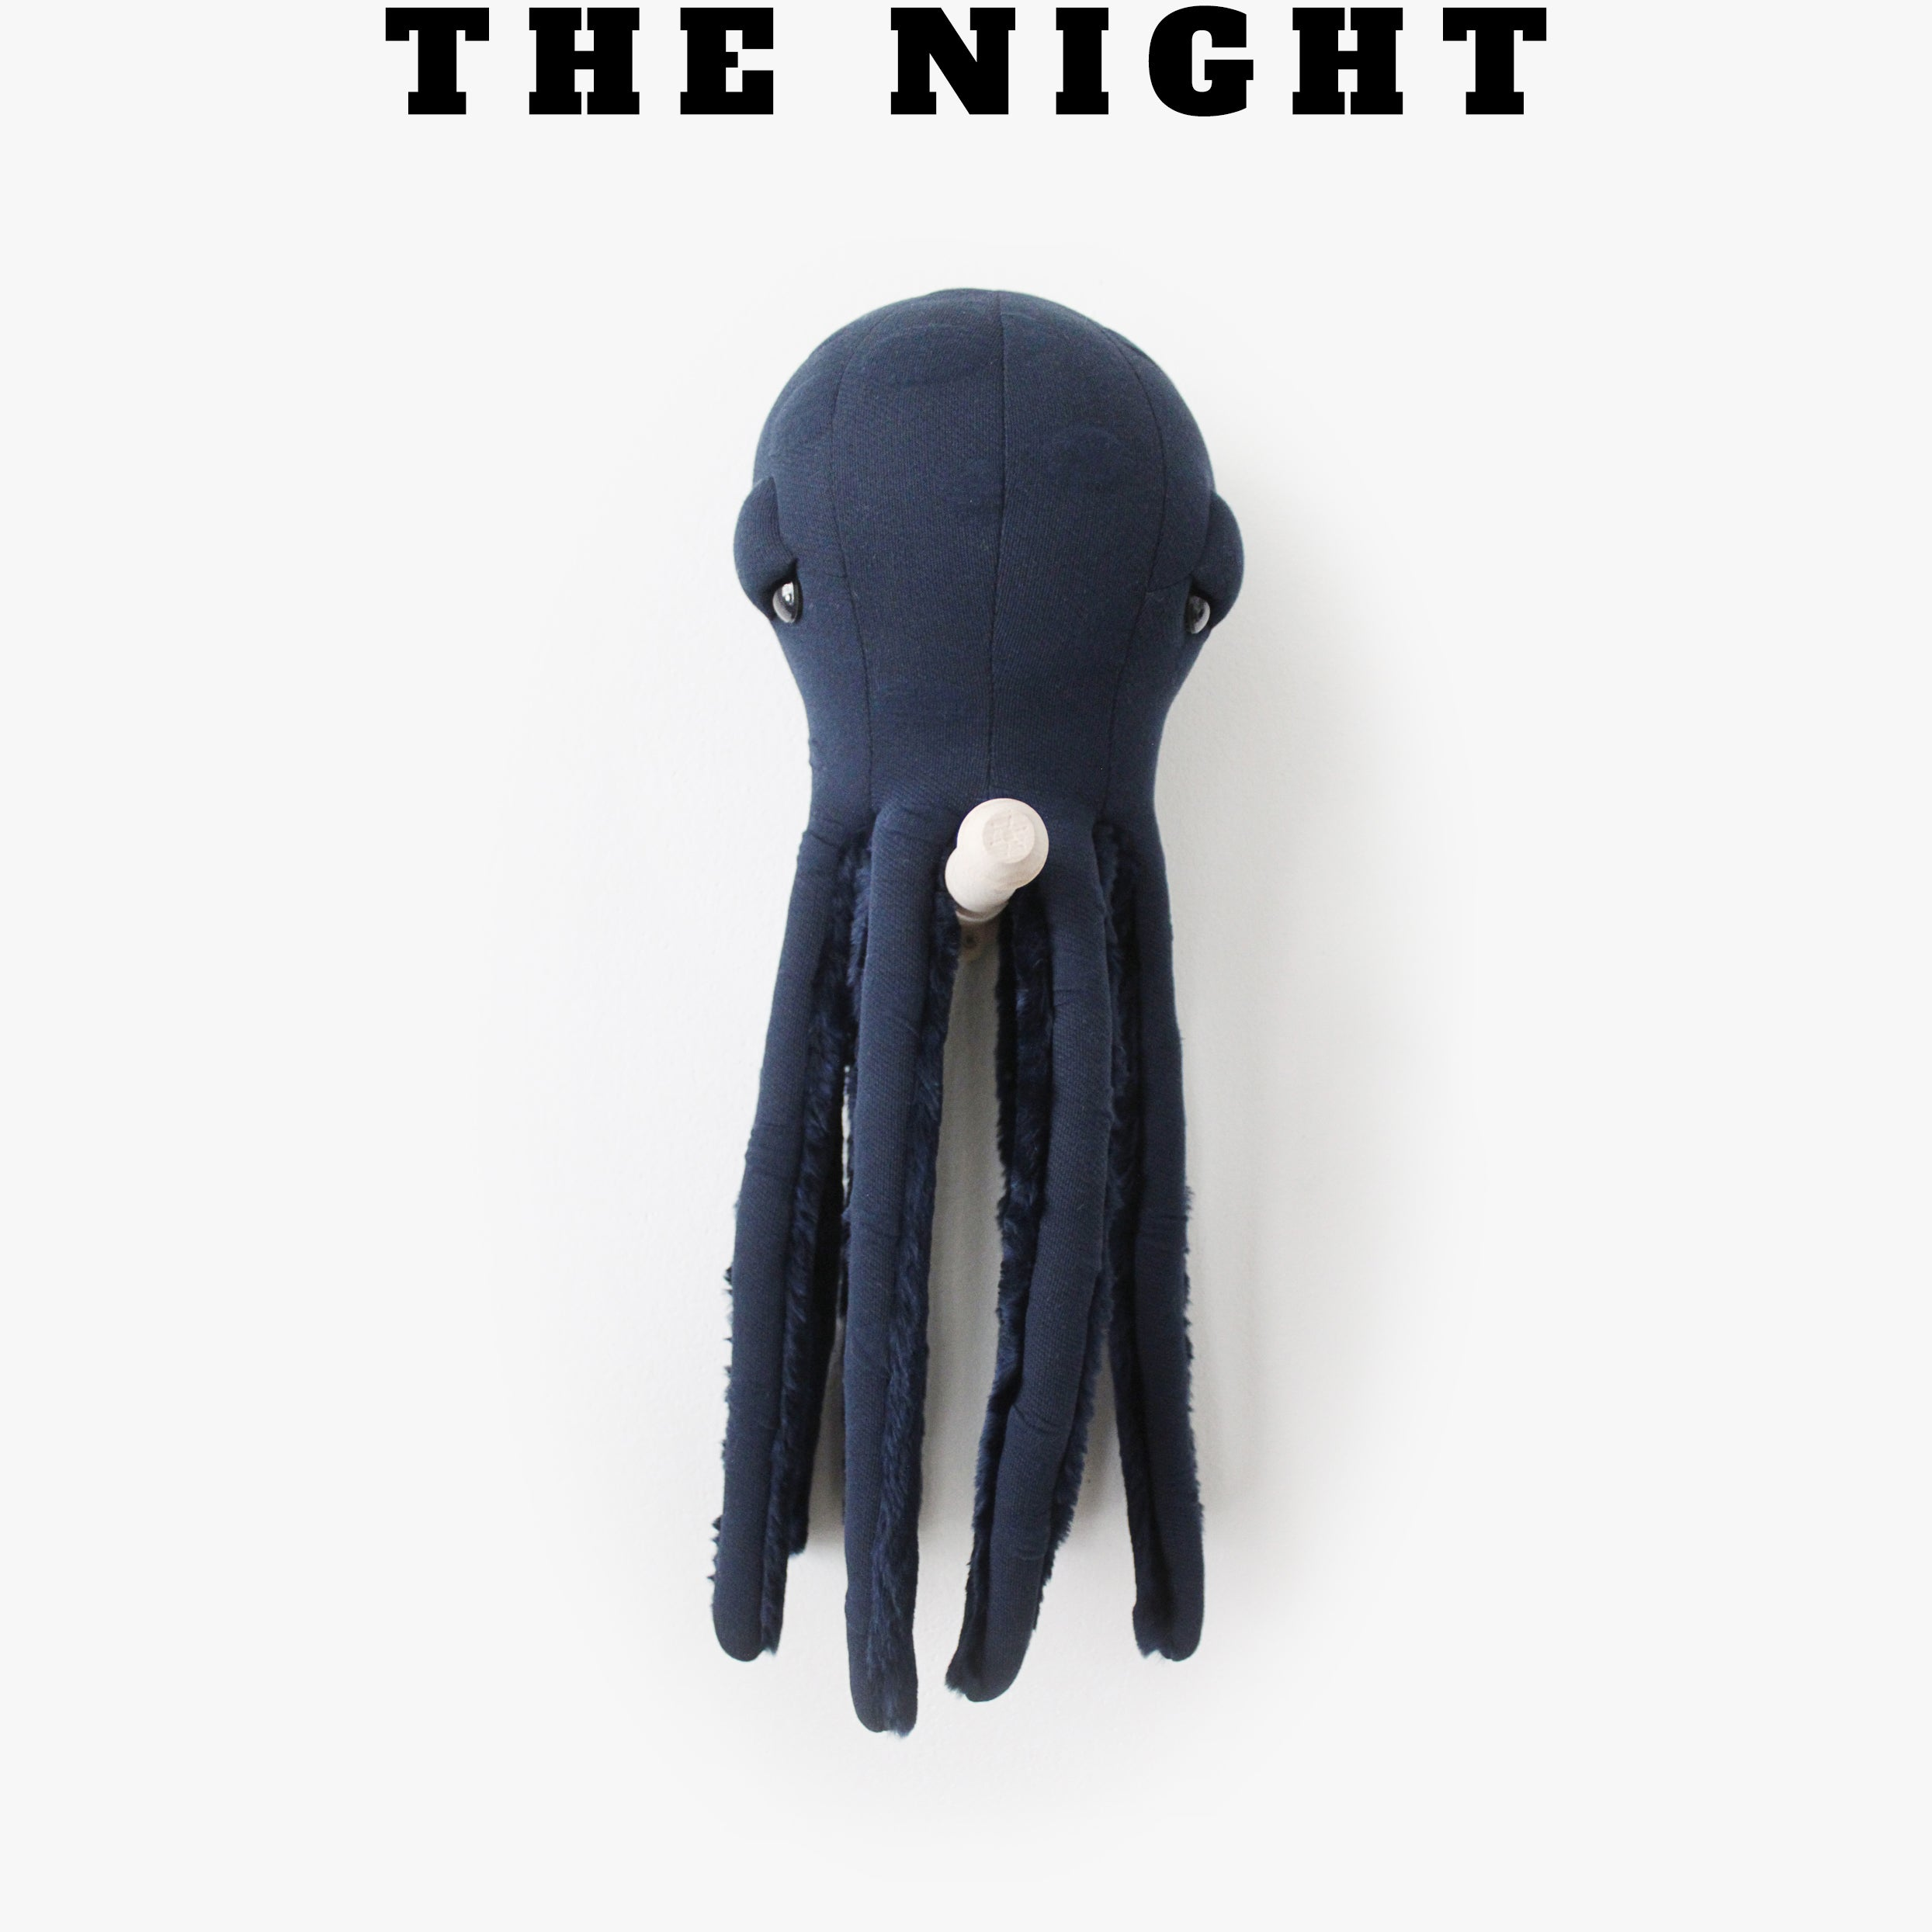 Night Octopus - www.bigstuffed.com